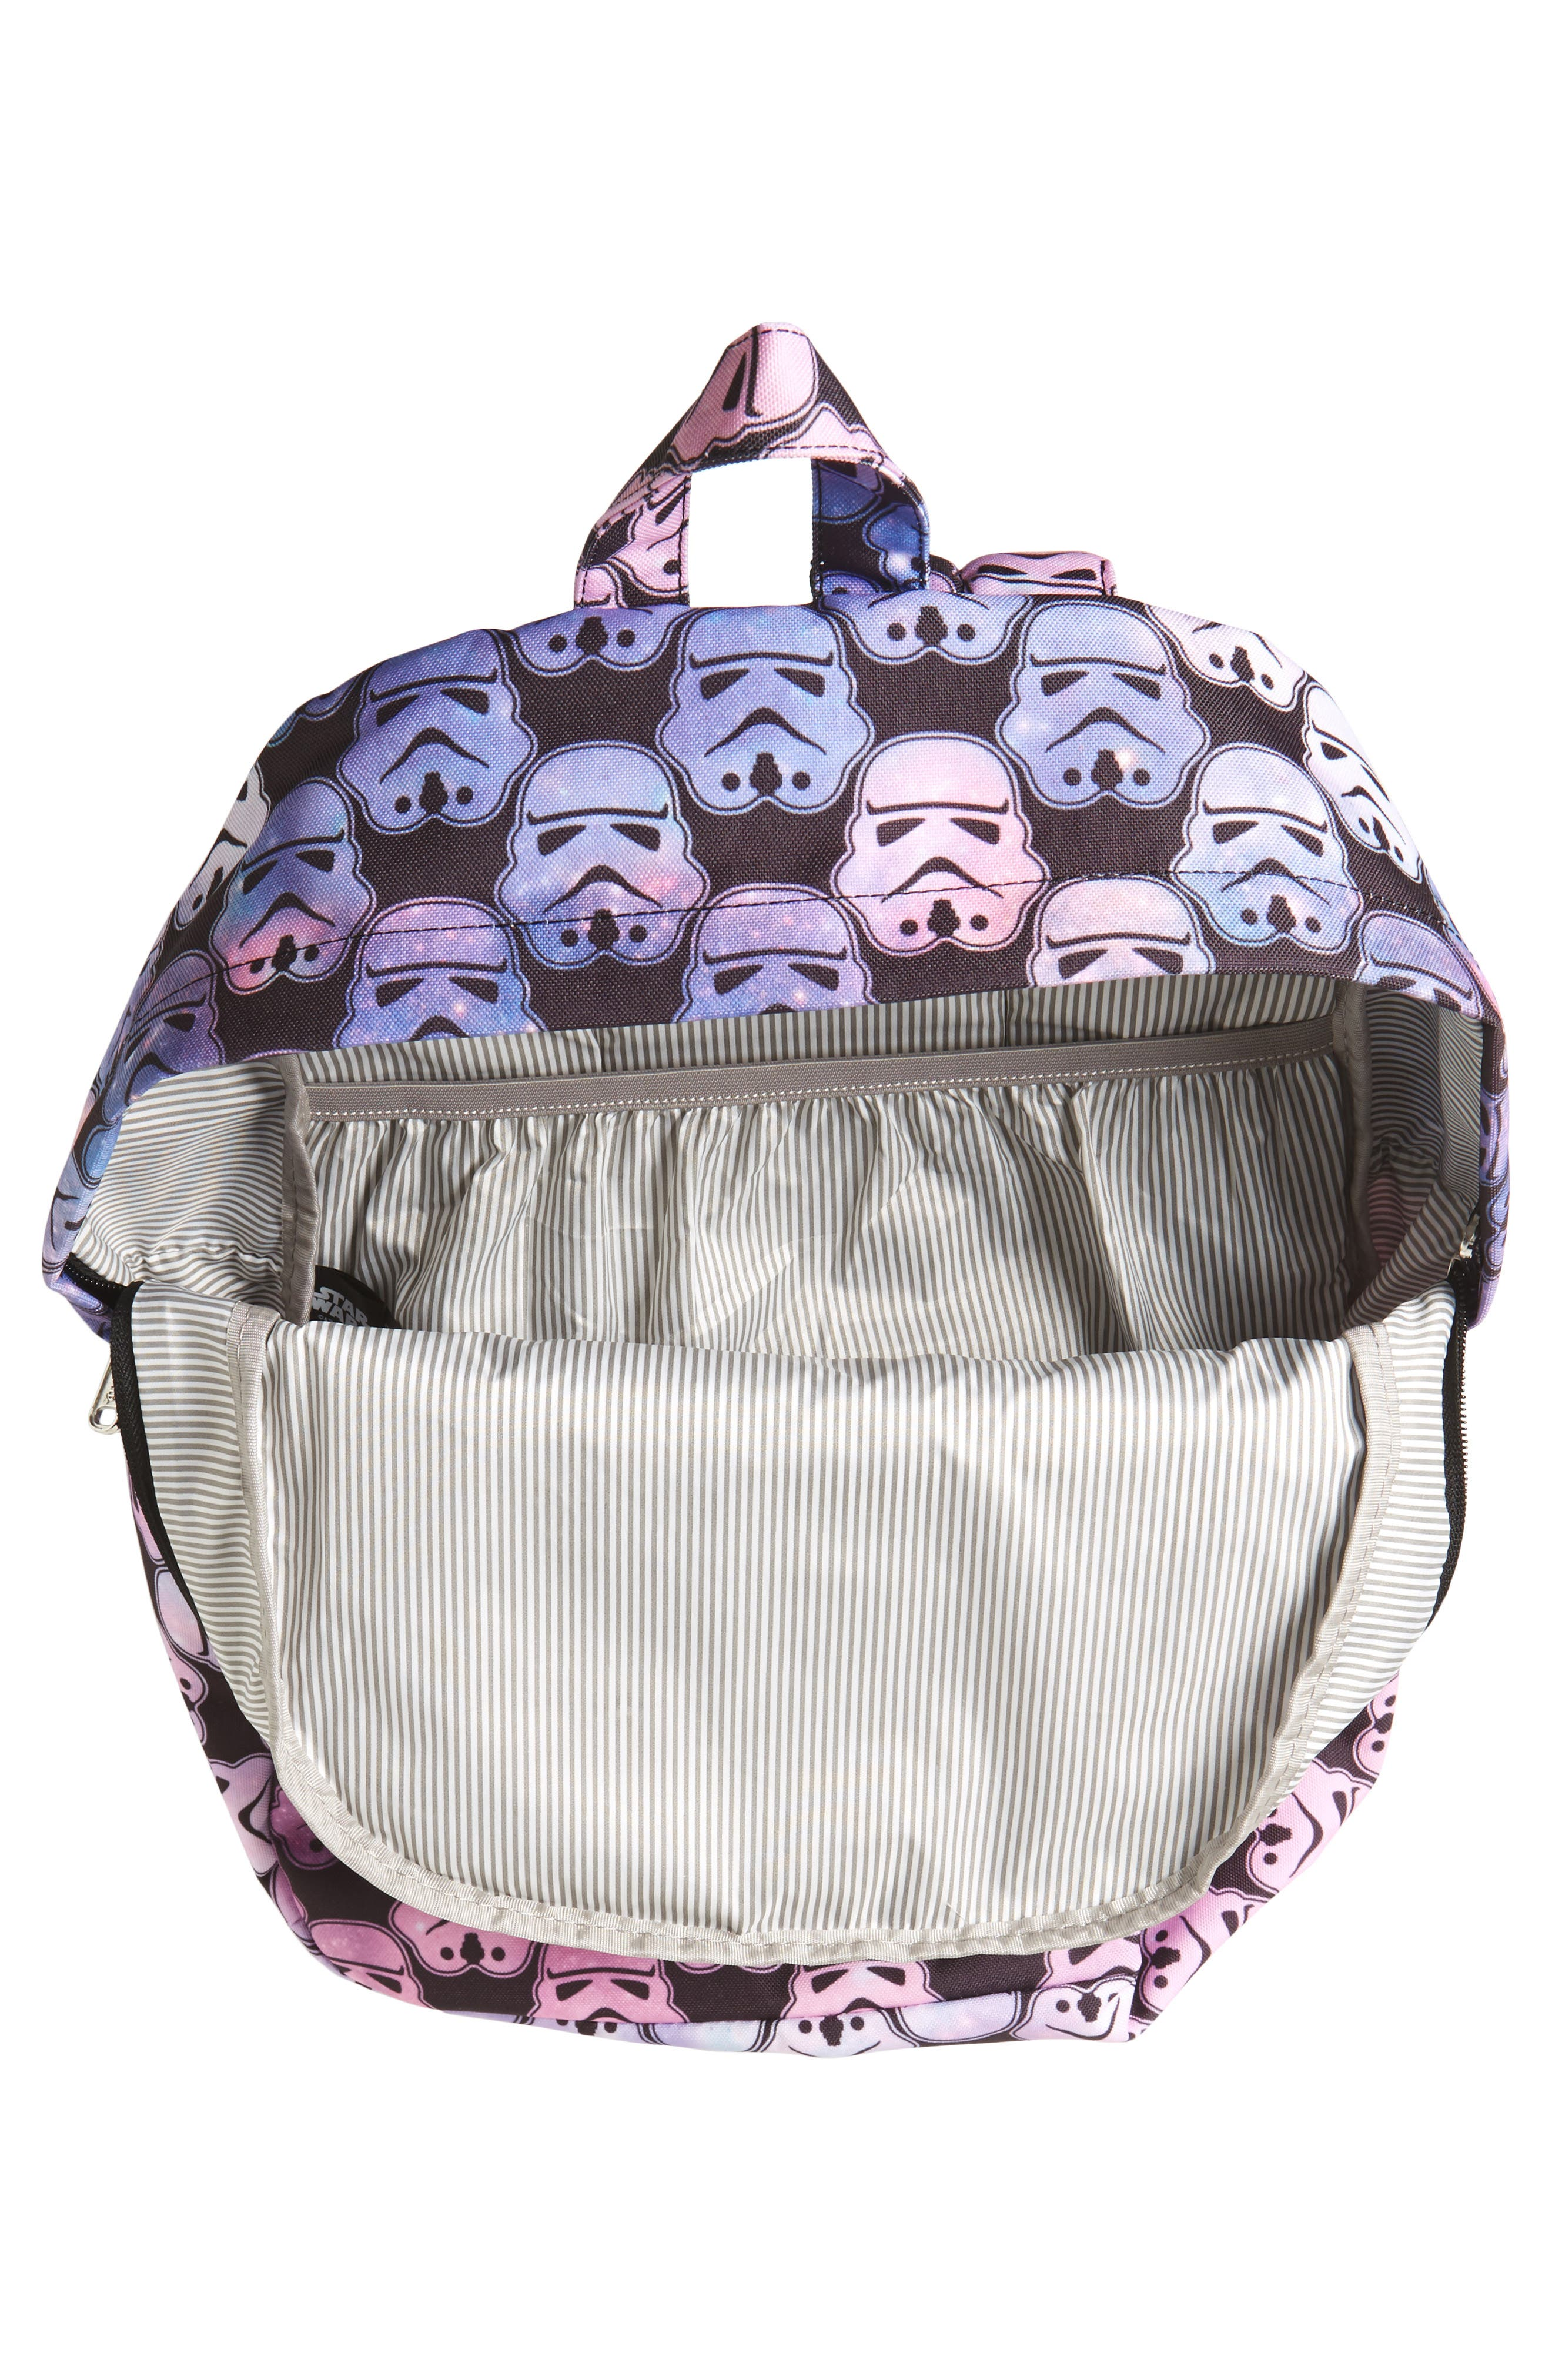 Star Wars<sup>™</sup> Stormtrooper Galaxy Backpack,                             Alternate thumbnail 3, color,                             001